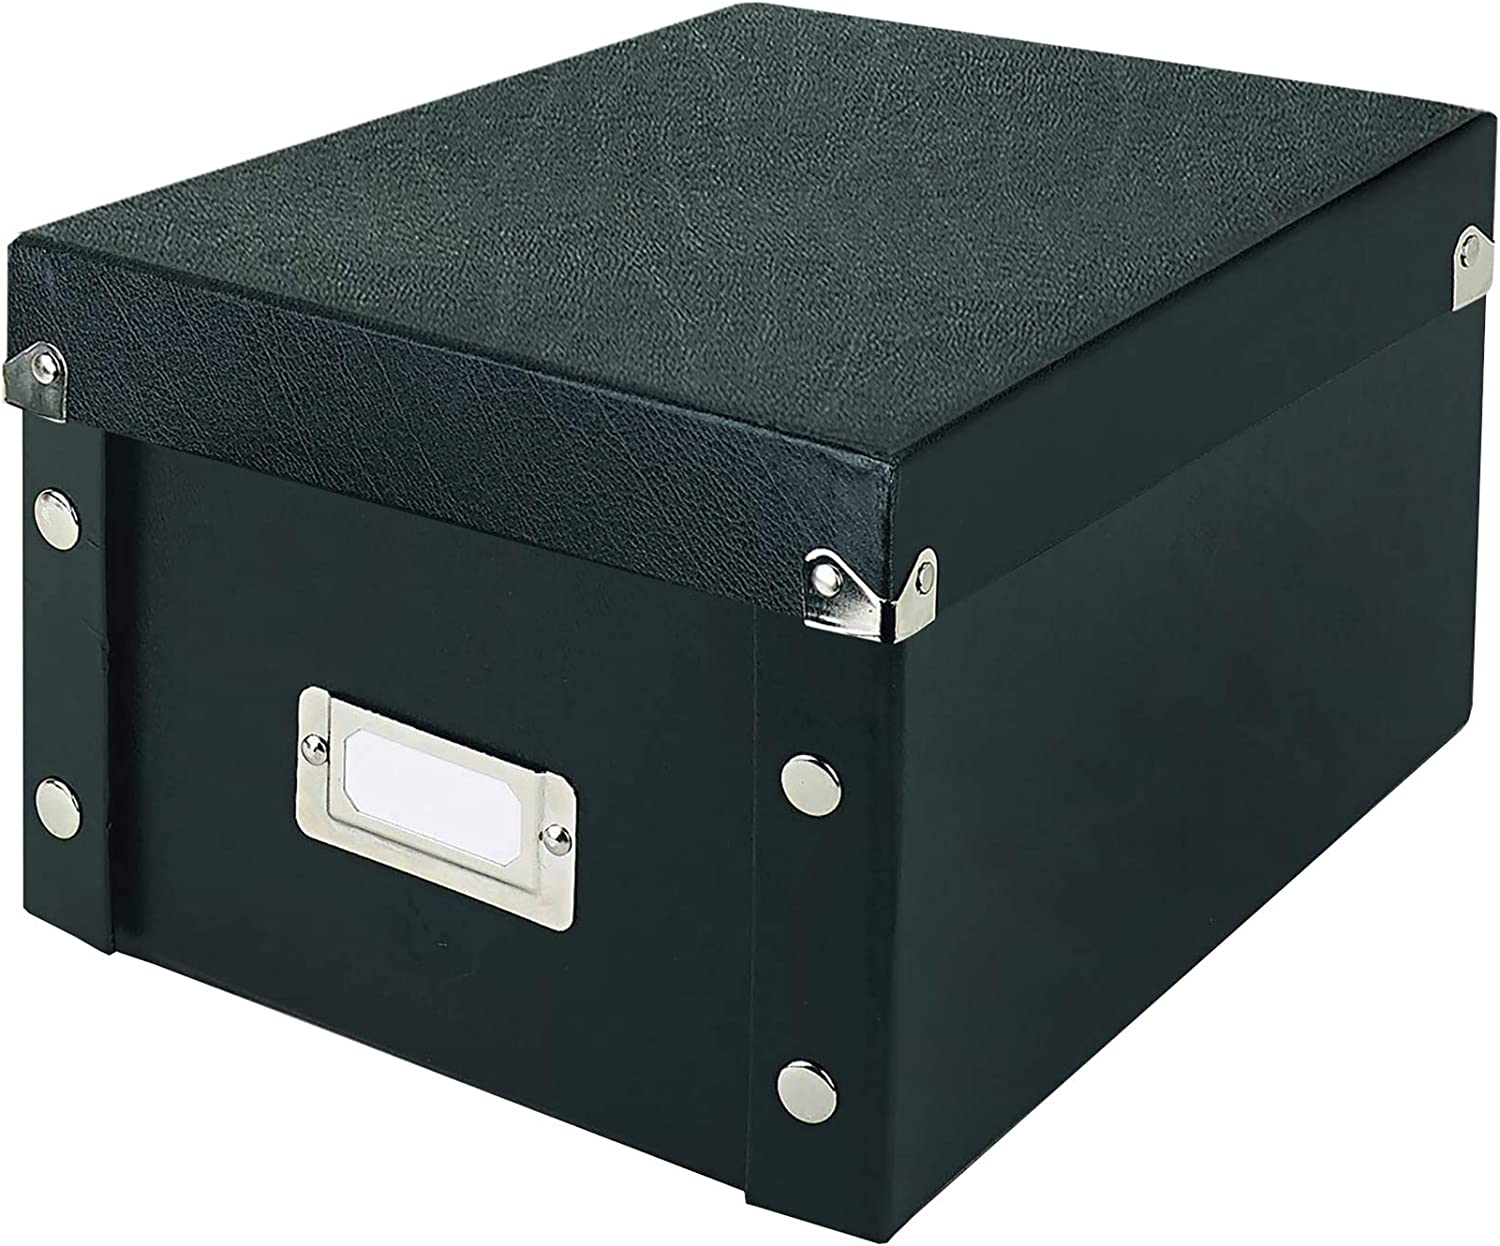 SNS01577 Snap-N-Store Durable Collapsible Index Card File Fits 1100 4 x 6 Inch Index Cards ,Black